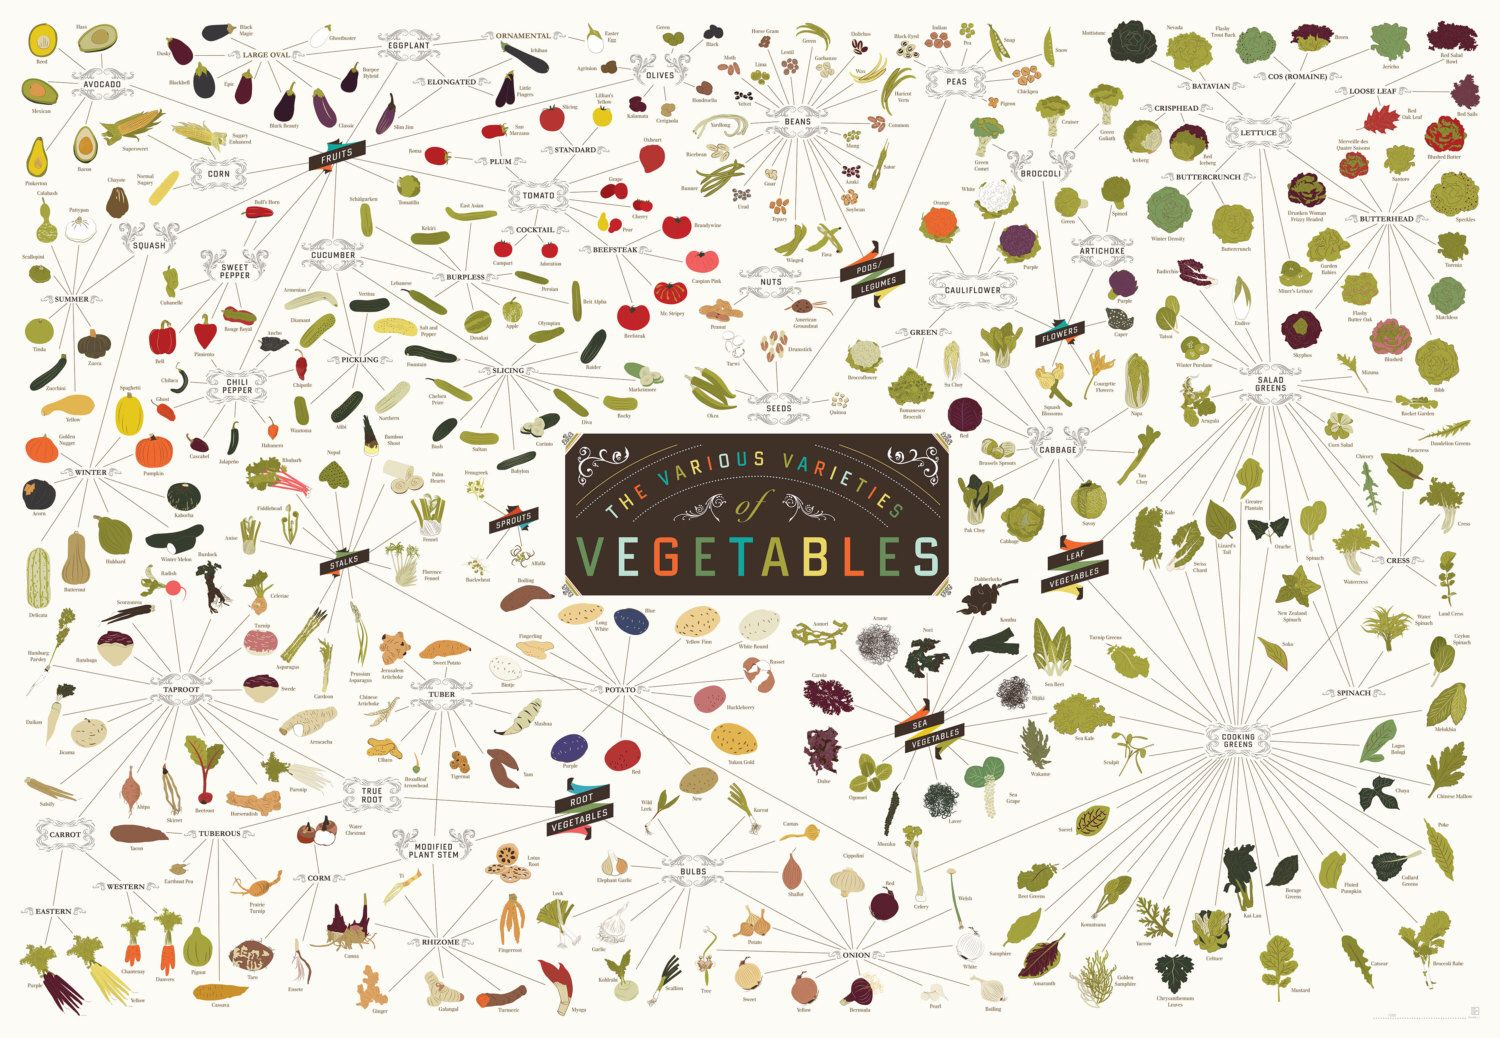 The Various Varieties of Vegetables (Print) by Popchartlab on Etsy https://www.etsy.com/listing/126569068/the-various-varieties-of-vegetables